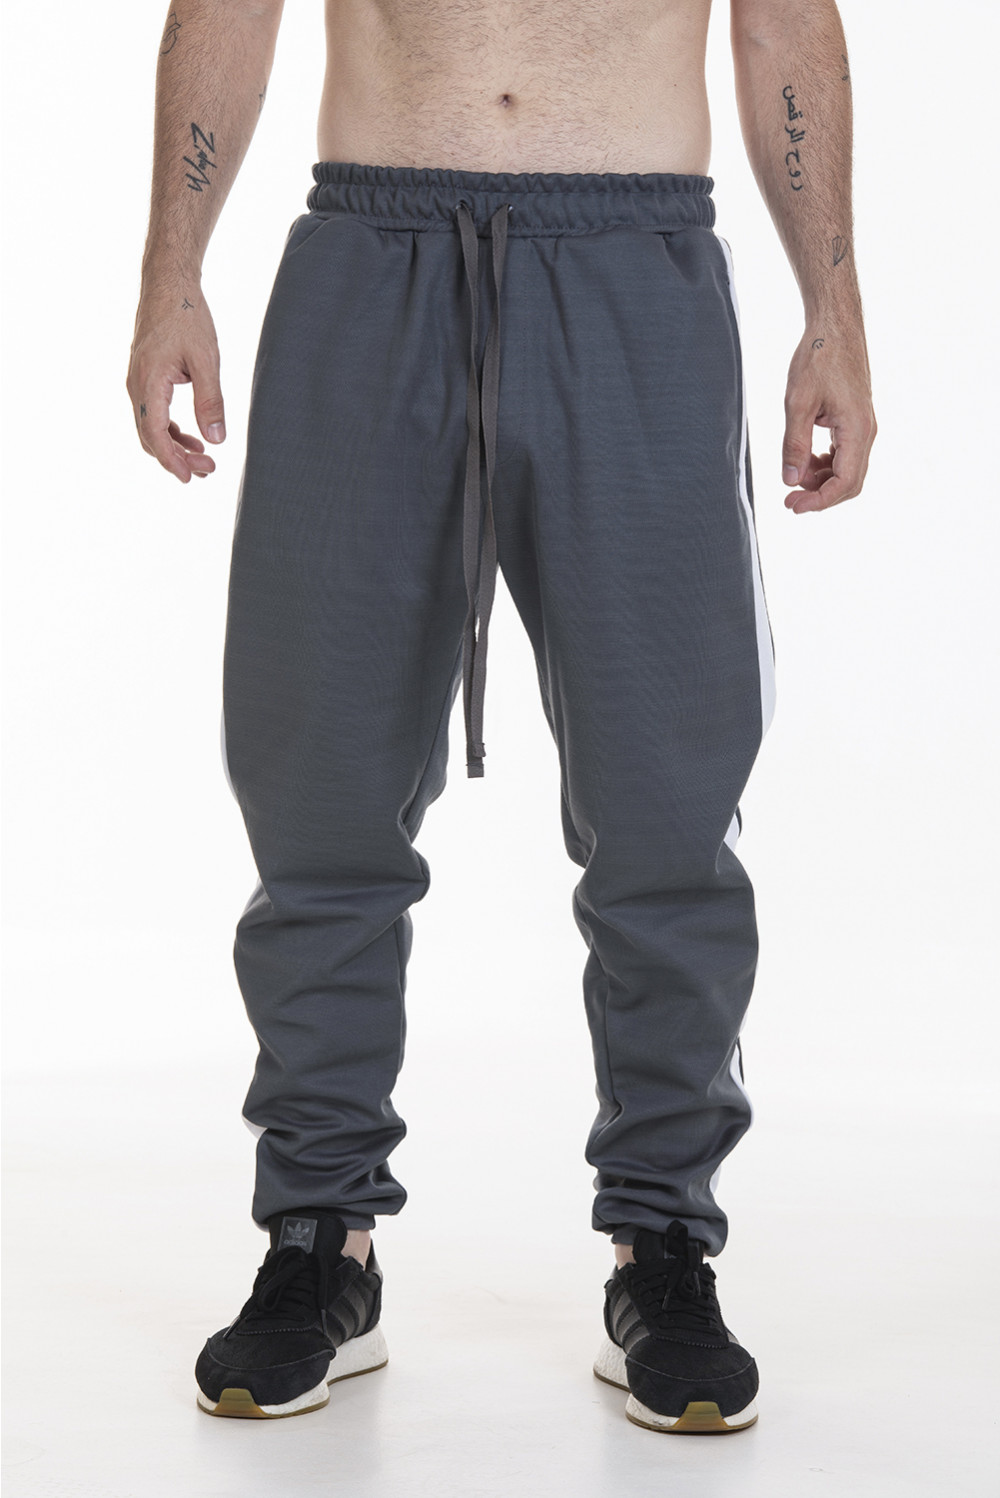 Pack 2 Calças Track Pants Side Stripe Korova Trackerz Cinza Chumbo/Bordô